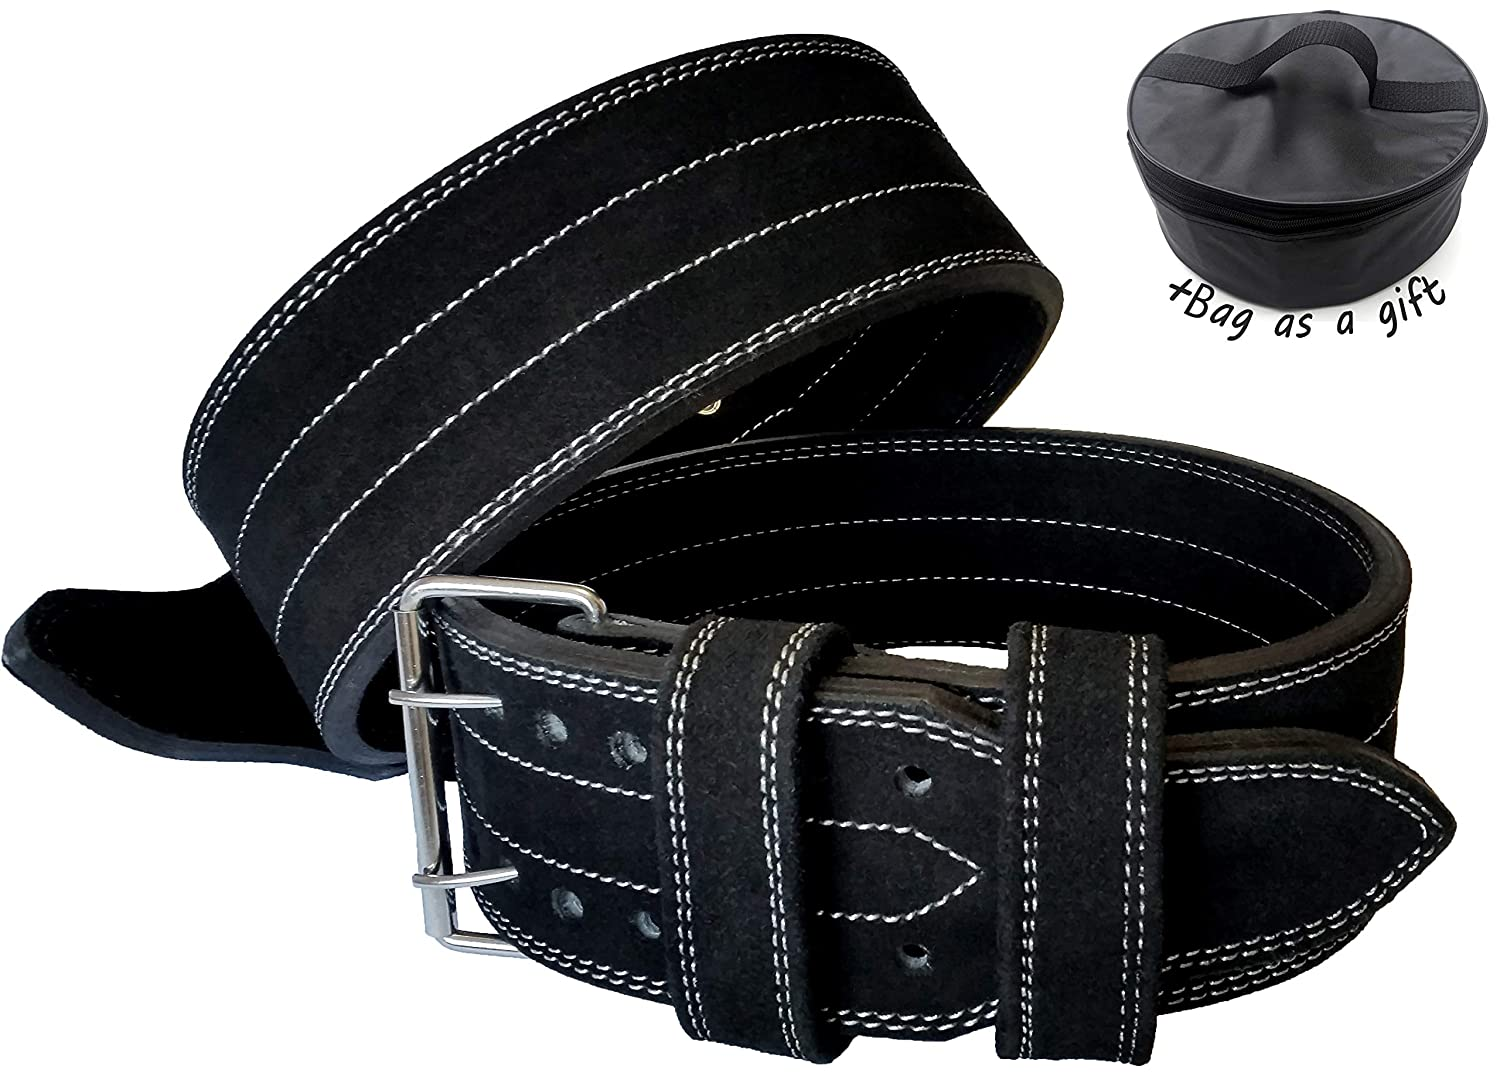 BodyFit+Weight Lifting Belts Leather Double Prong, Power Lifting Belt, Bodybuilding Belt